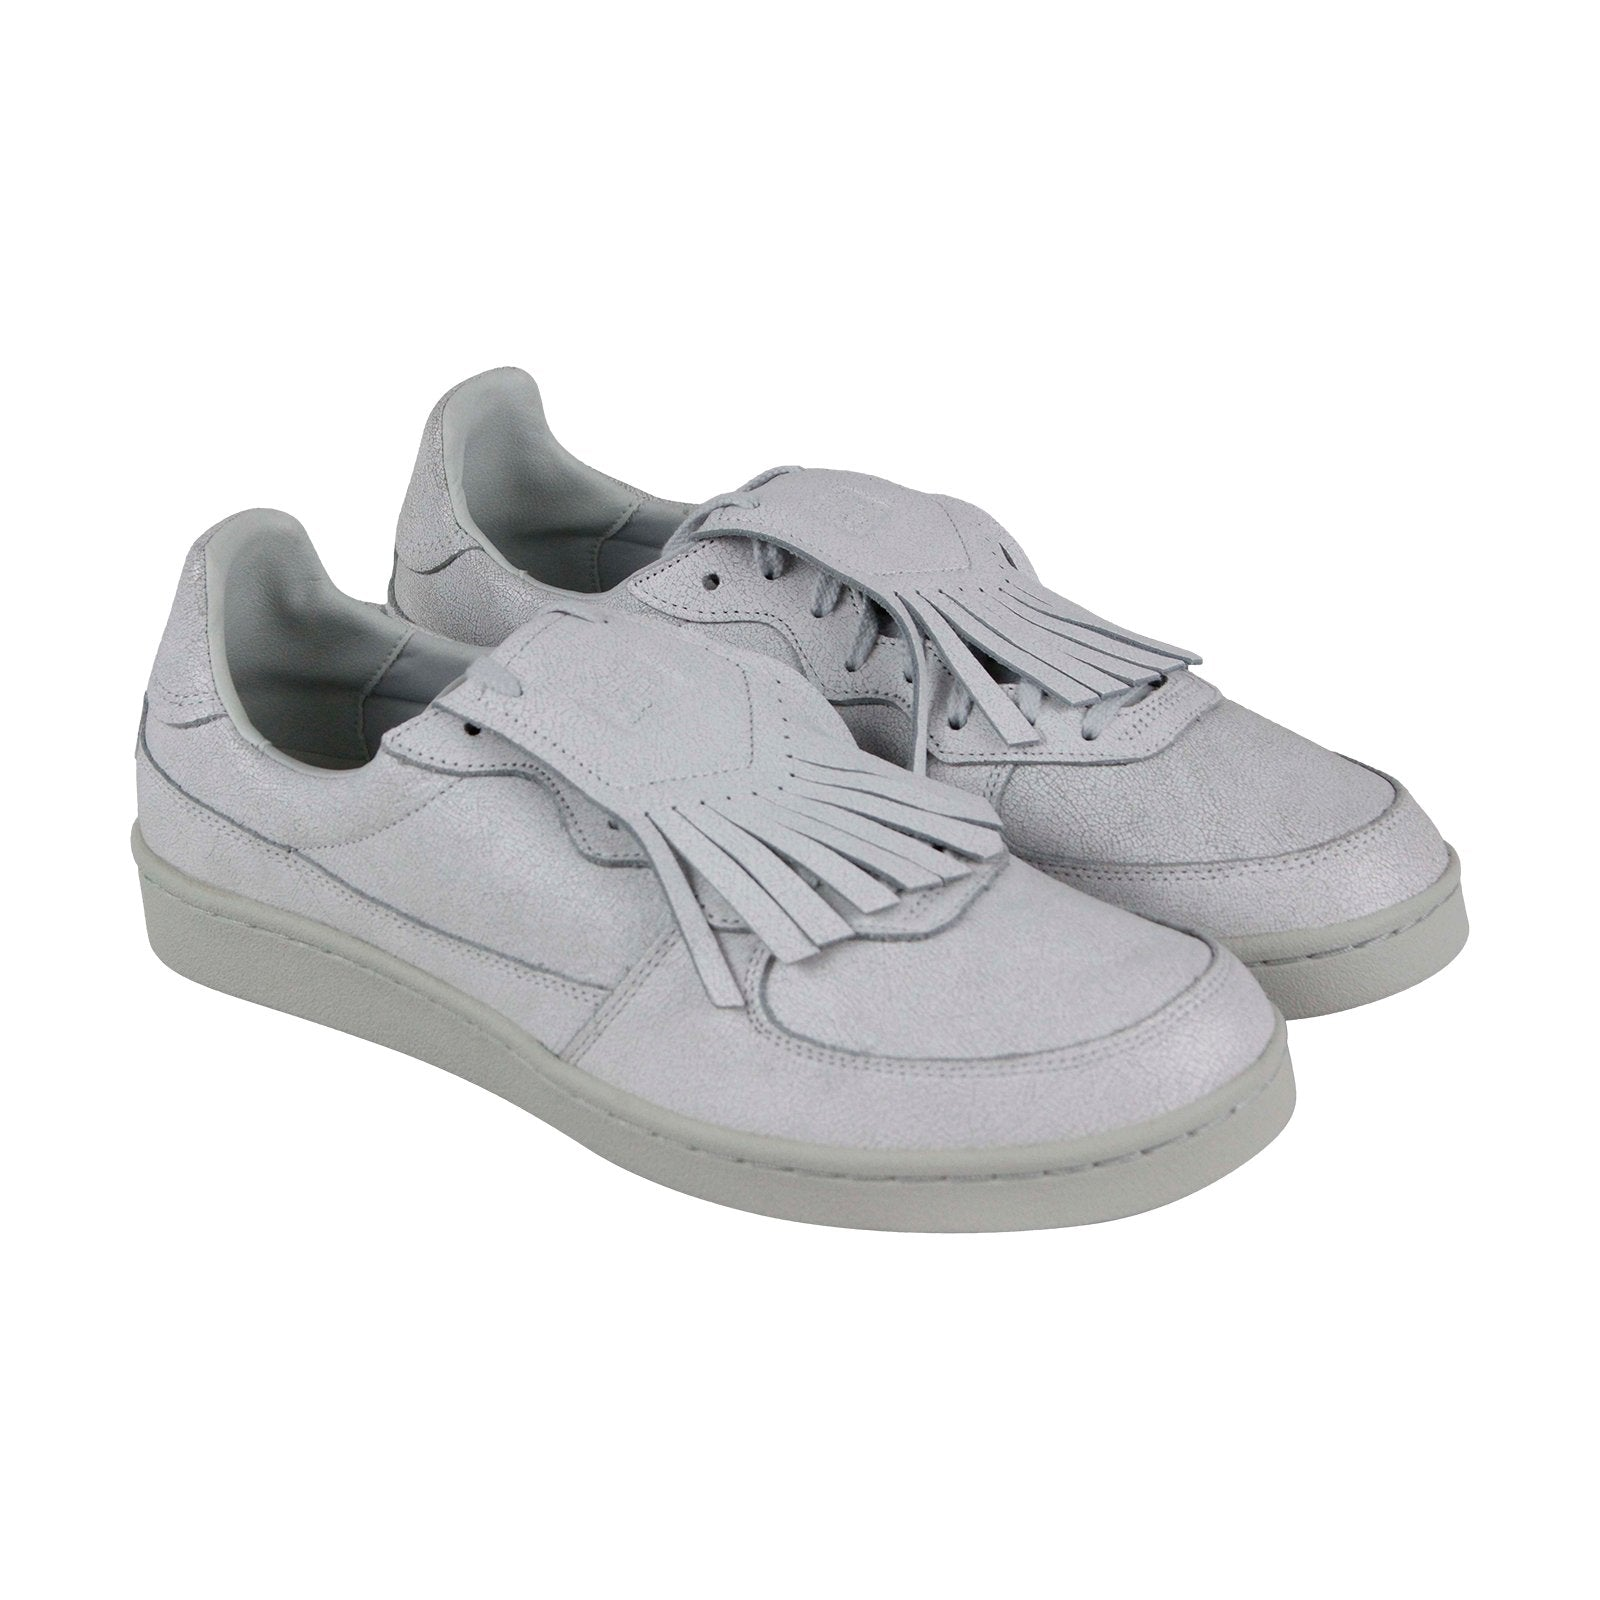 new style 0c911 e3bd5 Onitsuka Tiger Gsm Ex Mens White Leather Lace Up Sneakers Shoes